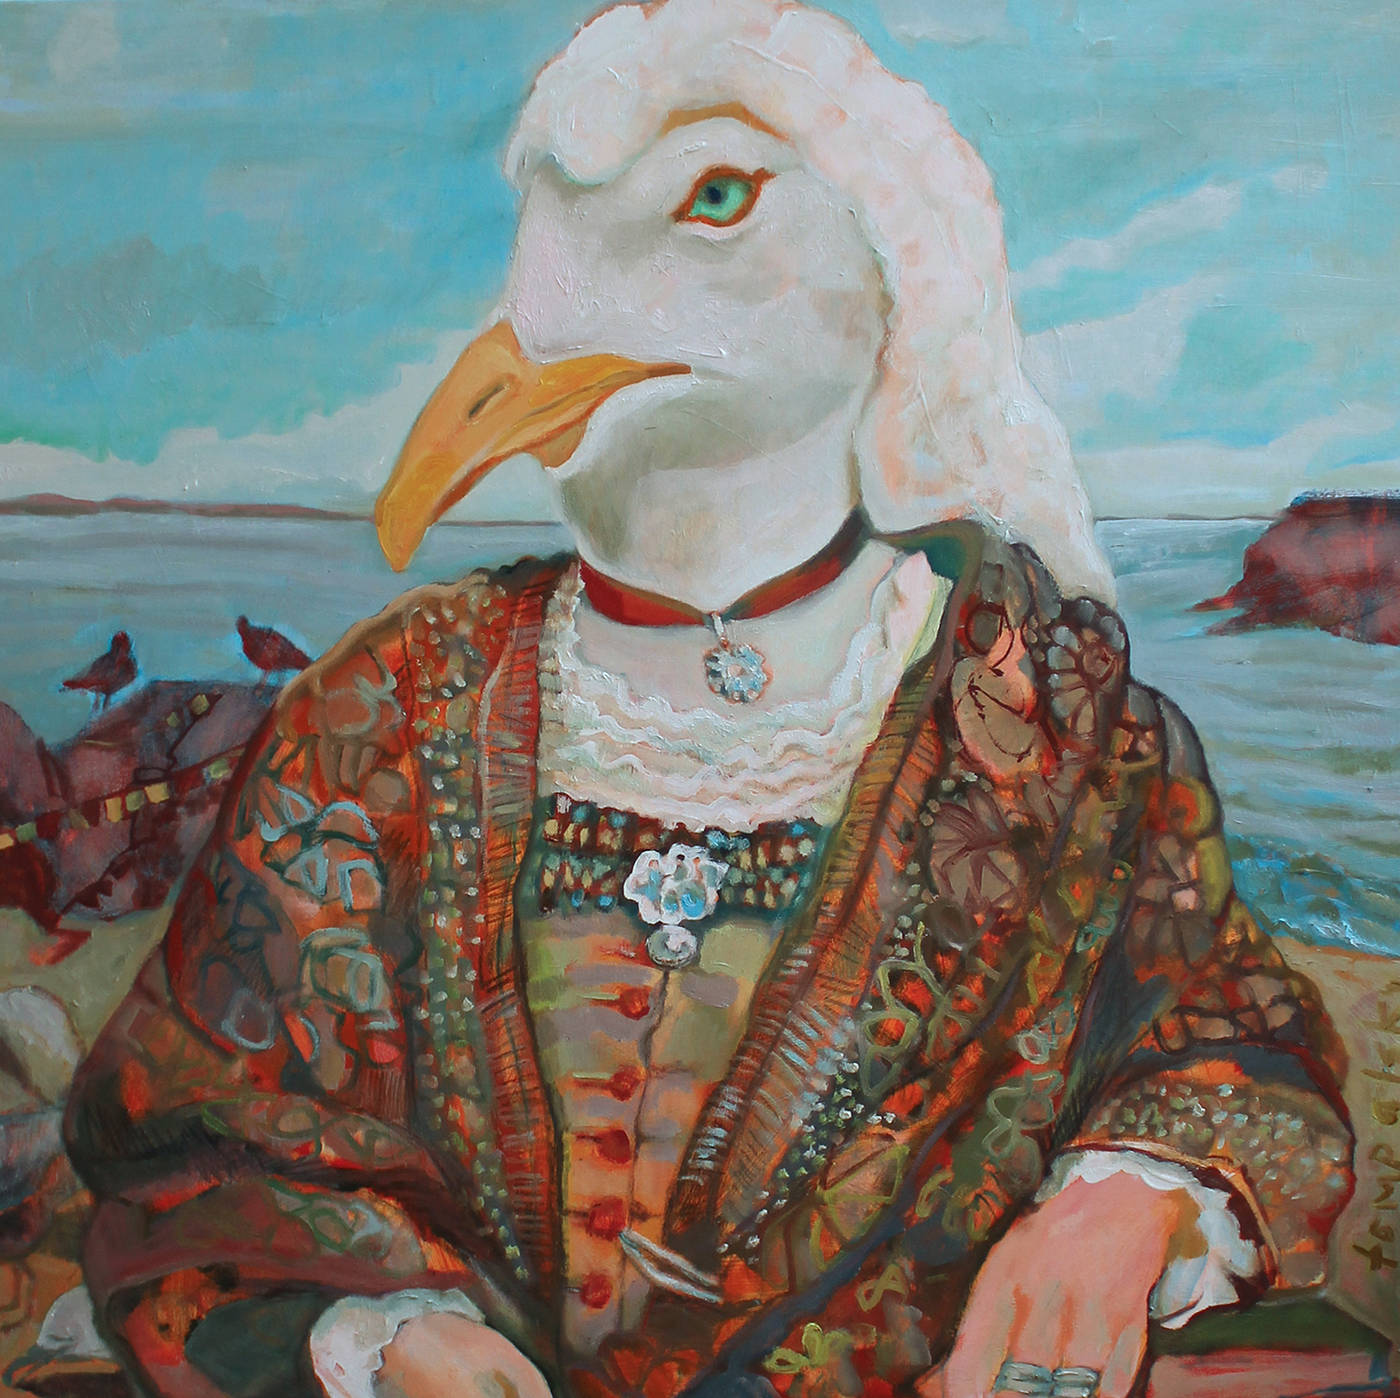 The Queen, one of about 30 paintings created by artist Sherry Tompalski for the Sex and the Single Seagull show at Gage Gallery starting Feb. 14. (Submitted image)